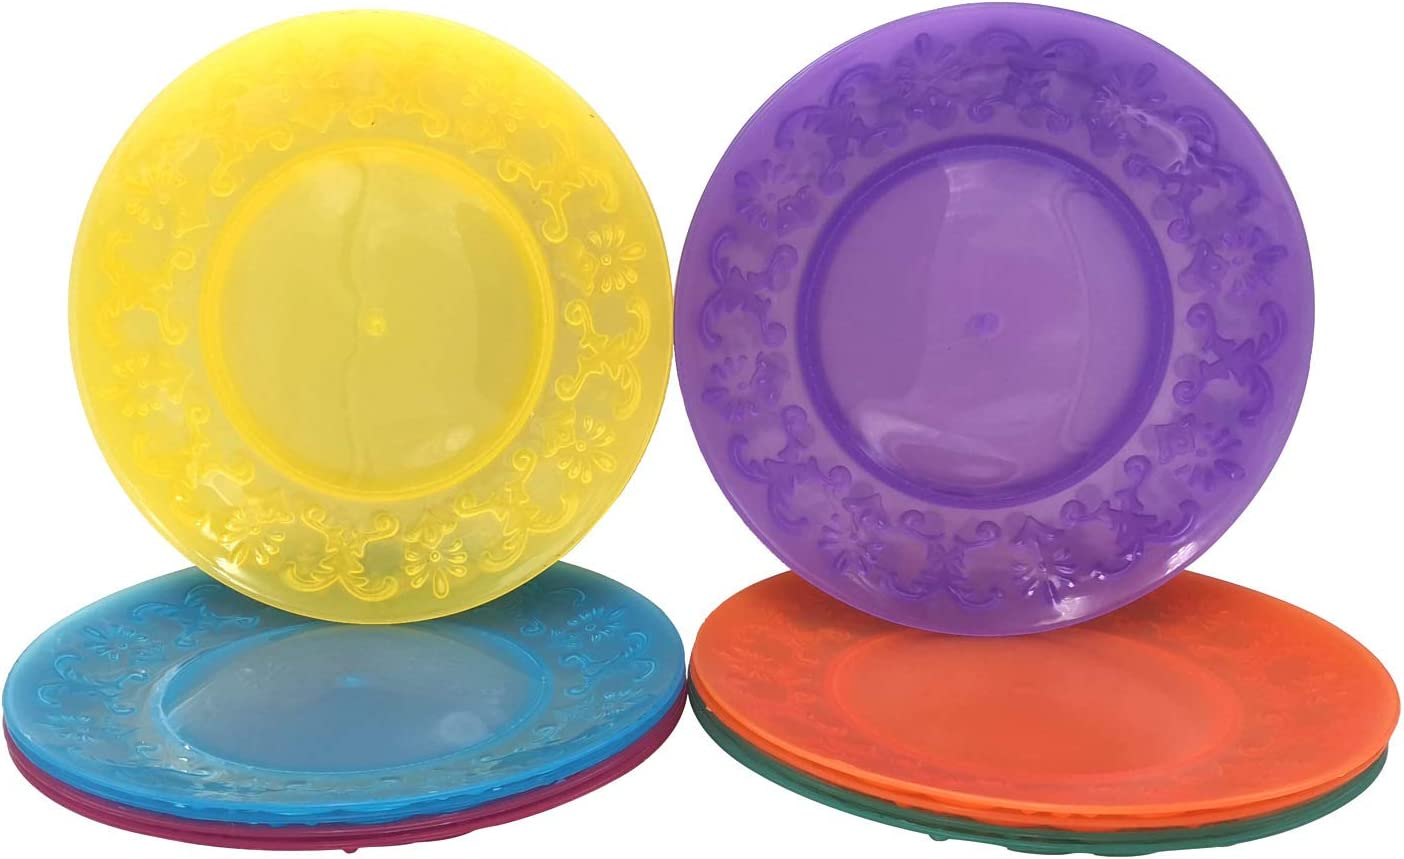 Plastic Dinner Plates Reusable Max 56% OFF Limited price sale BPA Free Inch 9 Col in 6 Assorted